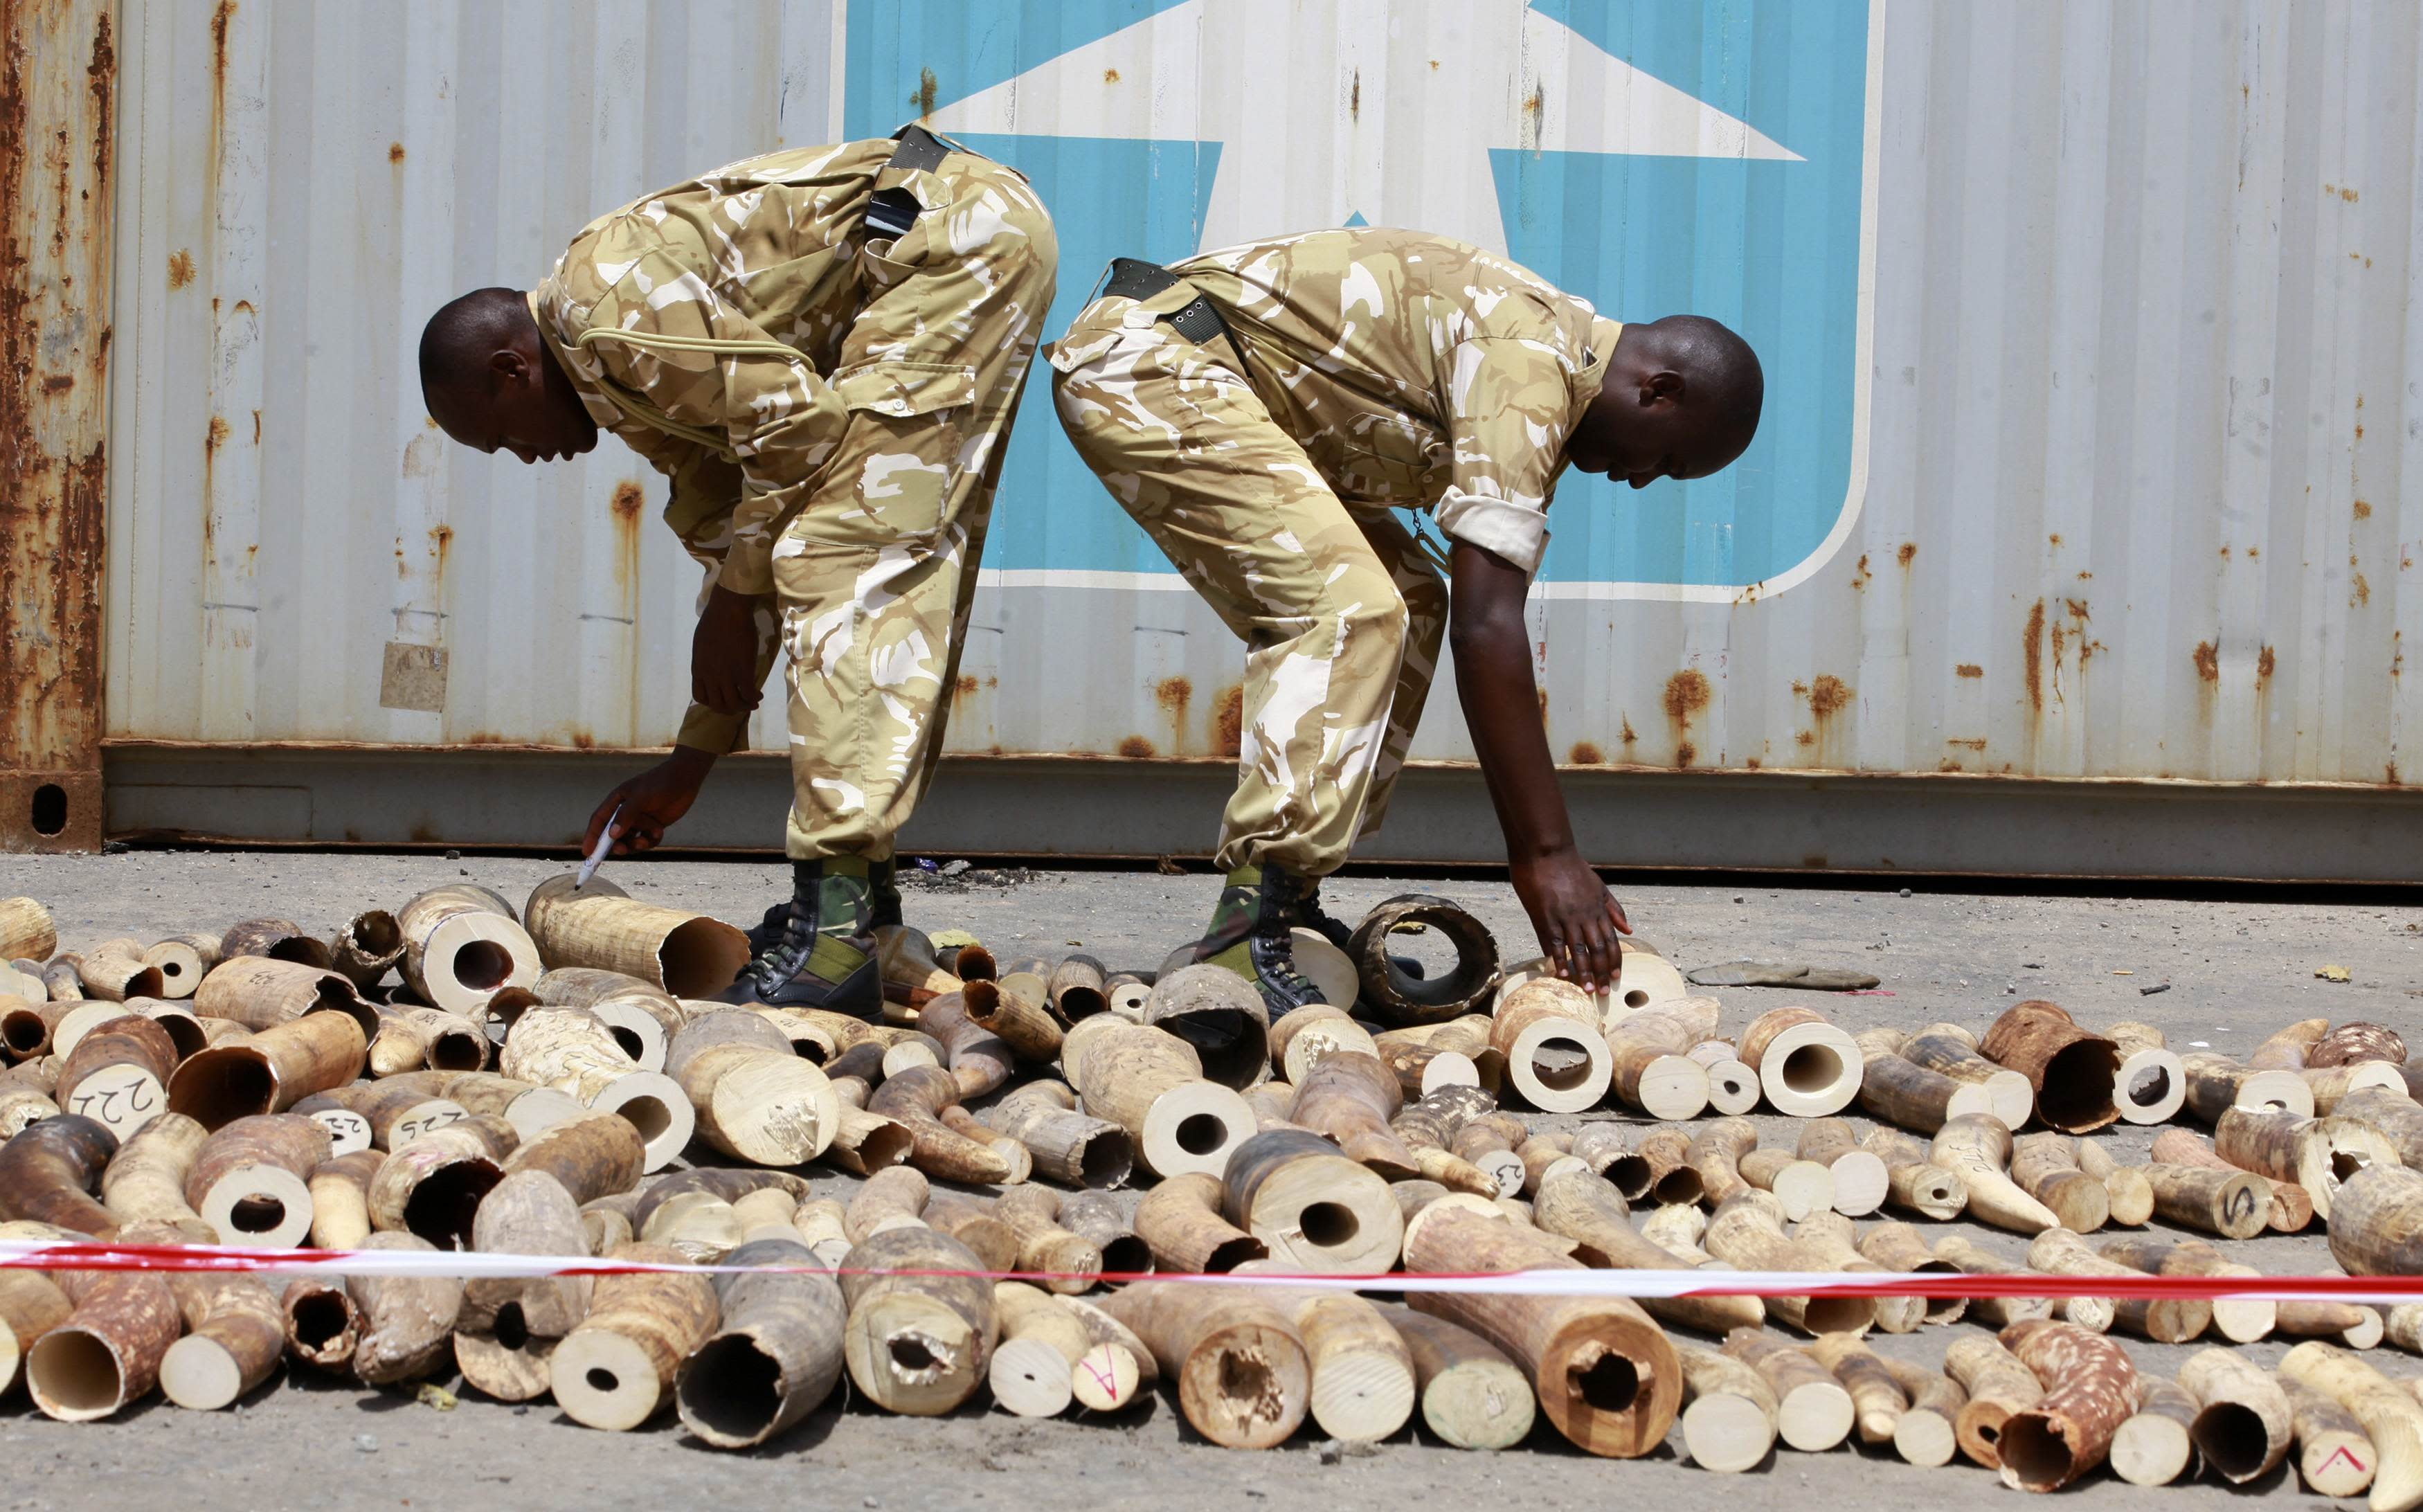 Kenya Wildlife Service (KWS) officers count elephant tusks which they impounded at a container terminal in Kenya's port city of Mombasa October 8, 2013. The container documents indicate that the tusks came Malaba Uganda and were destined for Turkey, Kenya Revenue Authority officials said. REUTERS/Joseph Okanga (KENYA - Tags: ANIMALS CRIME LAW)